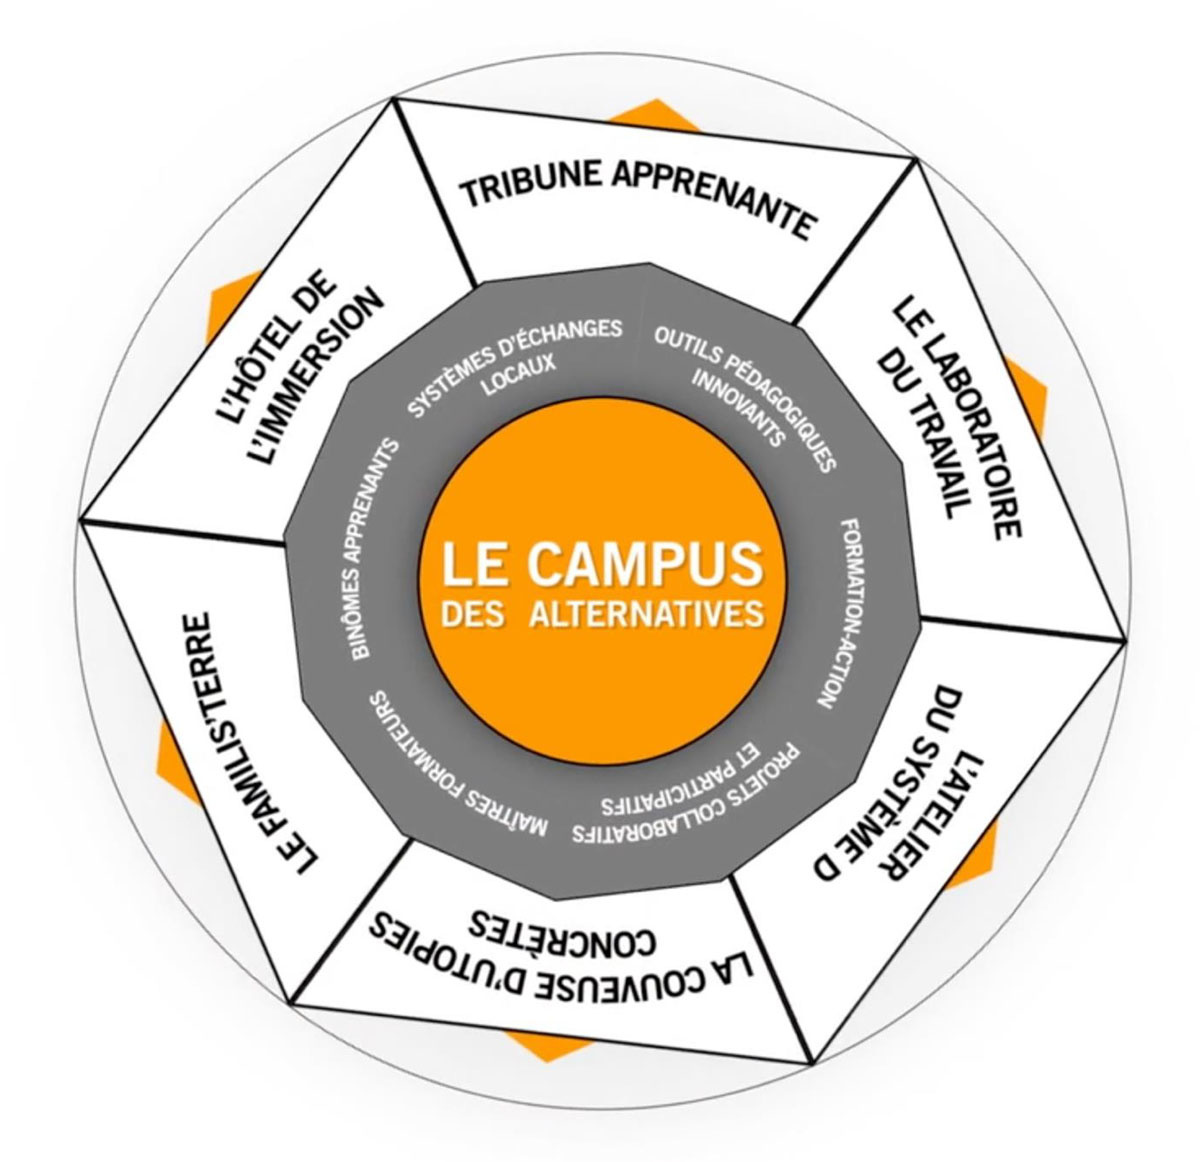 Schéma du campus des alternatives